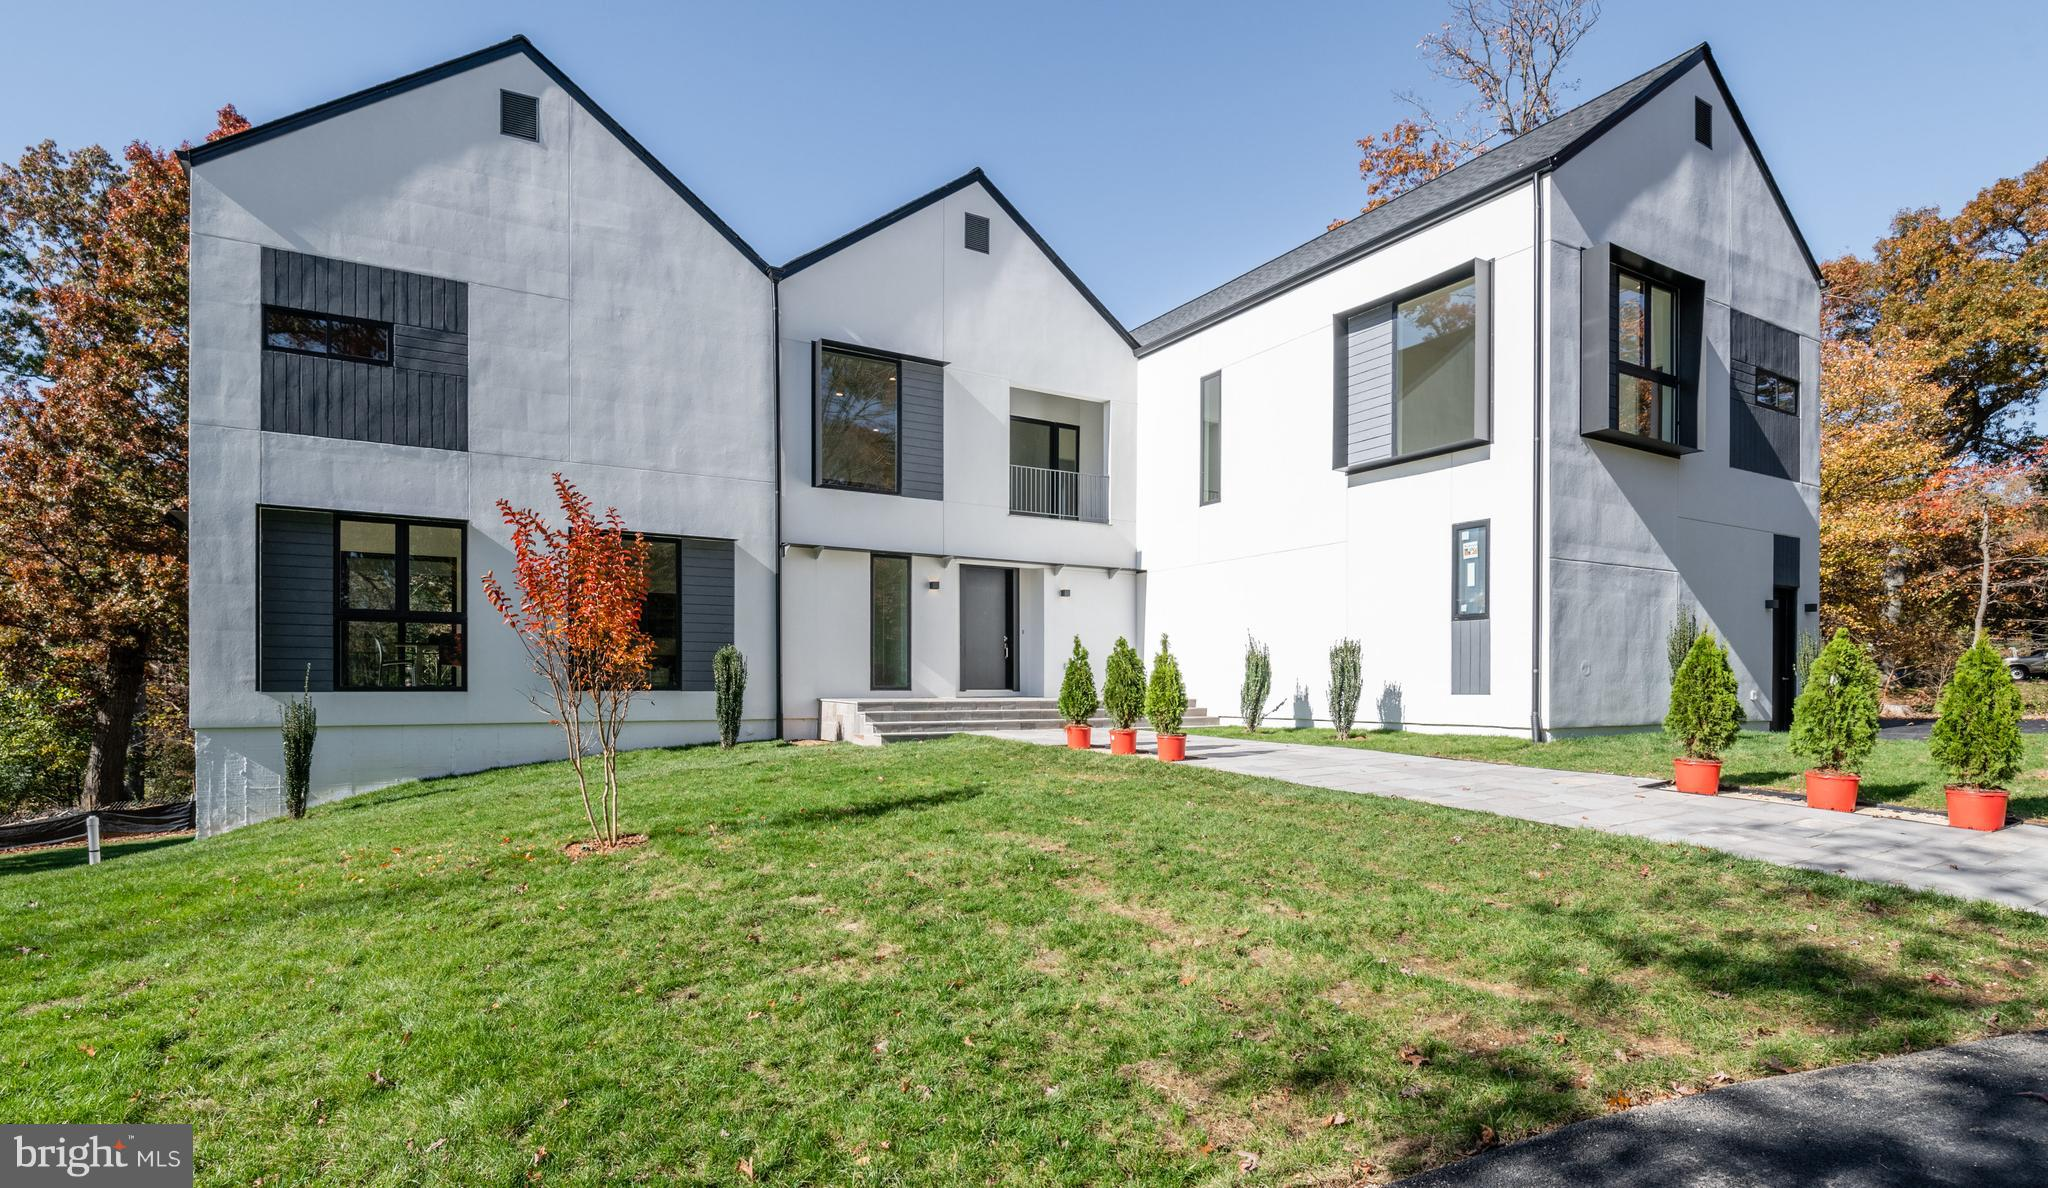 We are thrilled to announce this brand-new modern home in Fairfax, VA designed by Gubo Architects, o